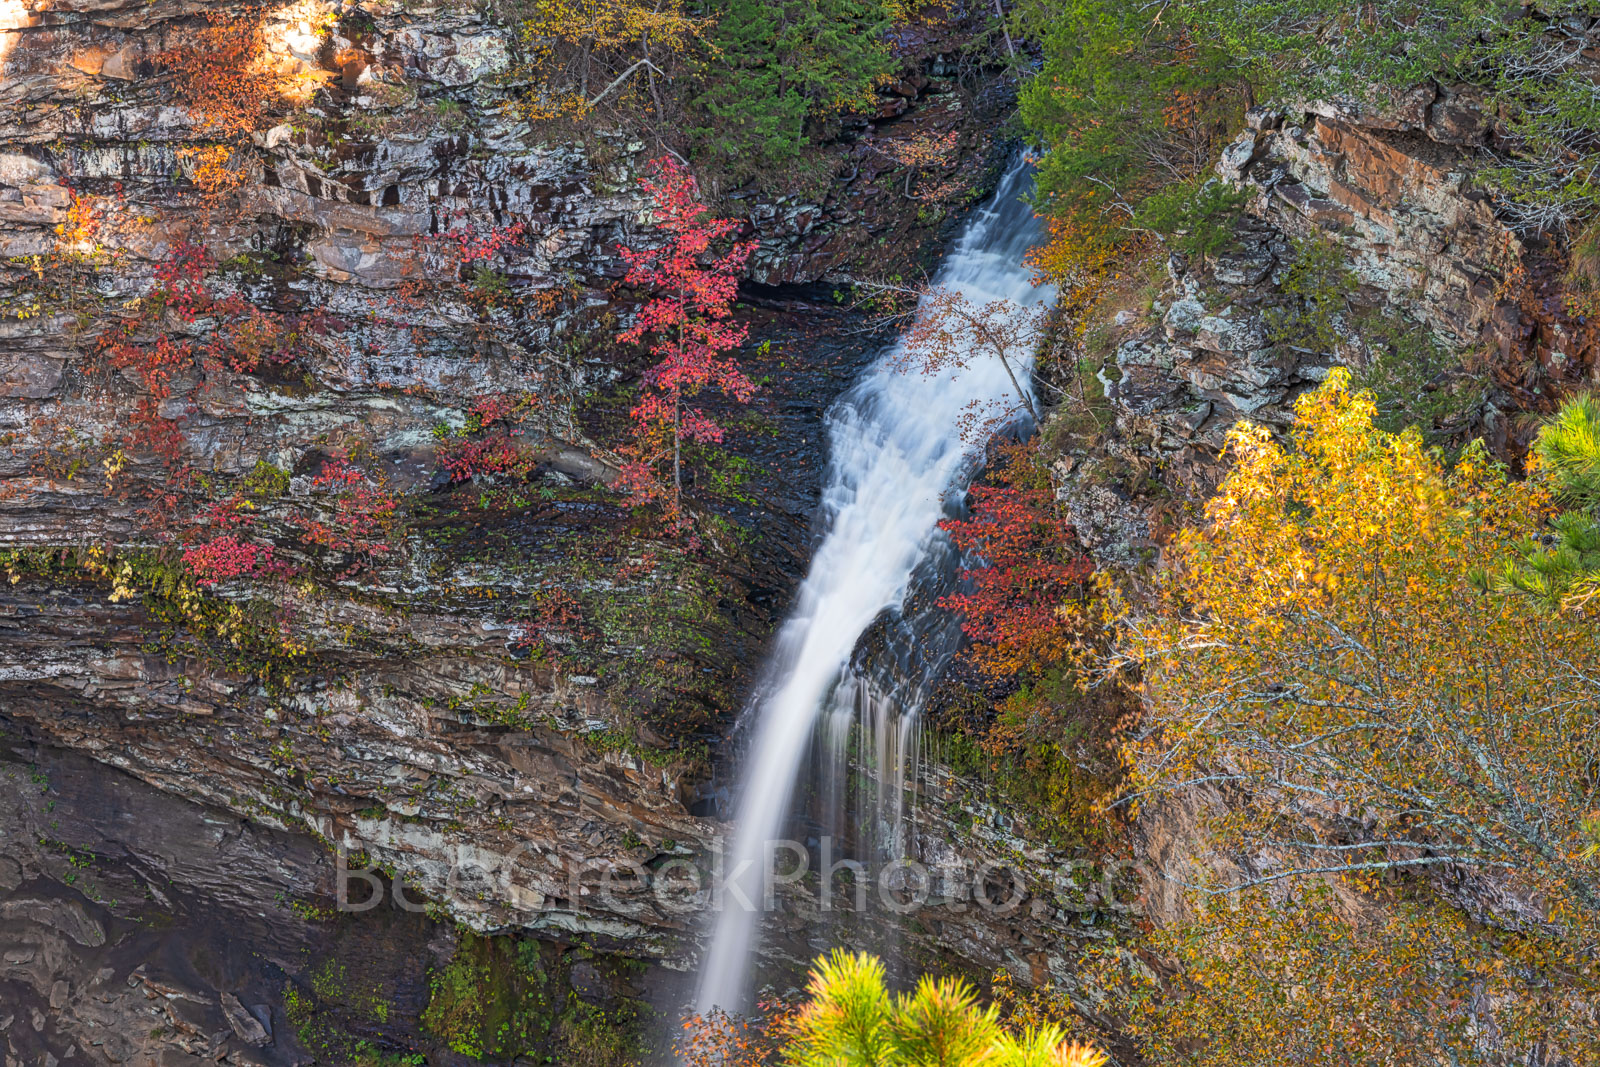 Cedar Fall, waterfall, cliff, red maples, pines, cedars, fall, autumn, flow, color, green, reds, close up, arkansas, jean petit, fall colors, , photo